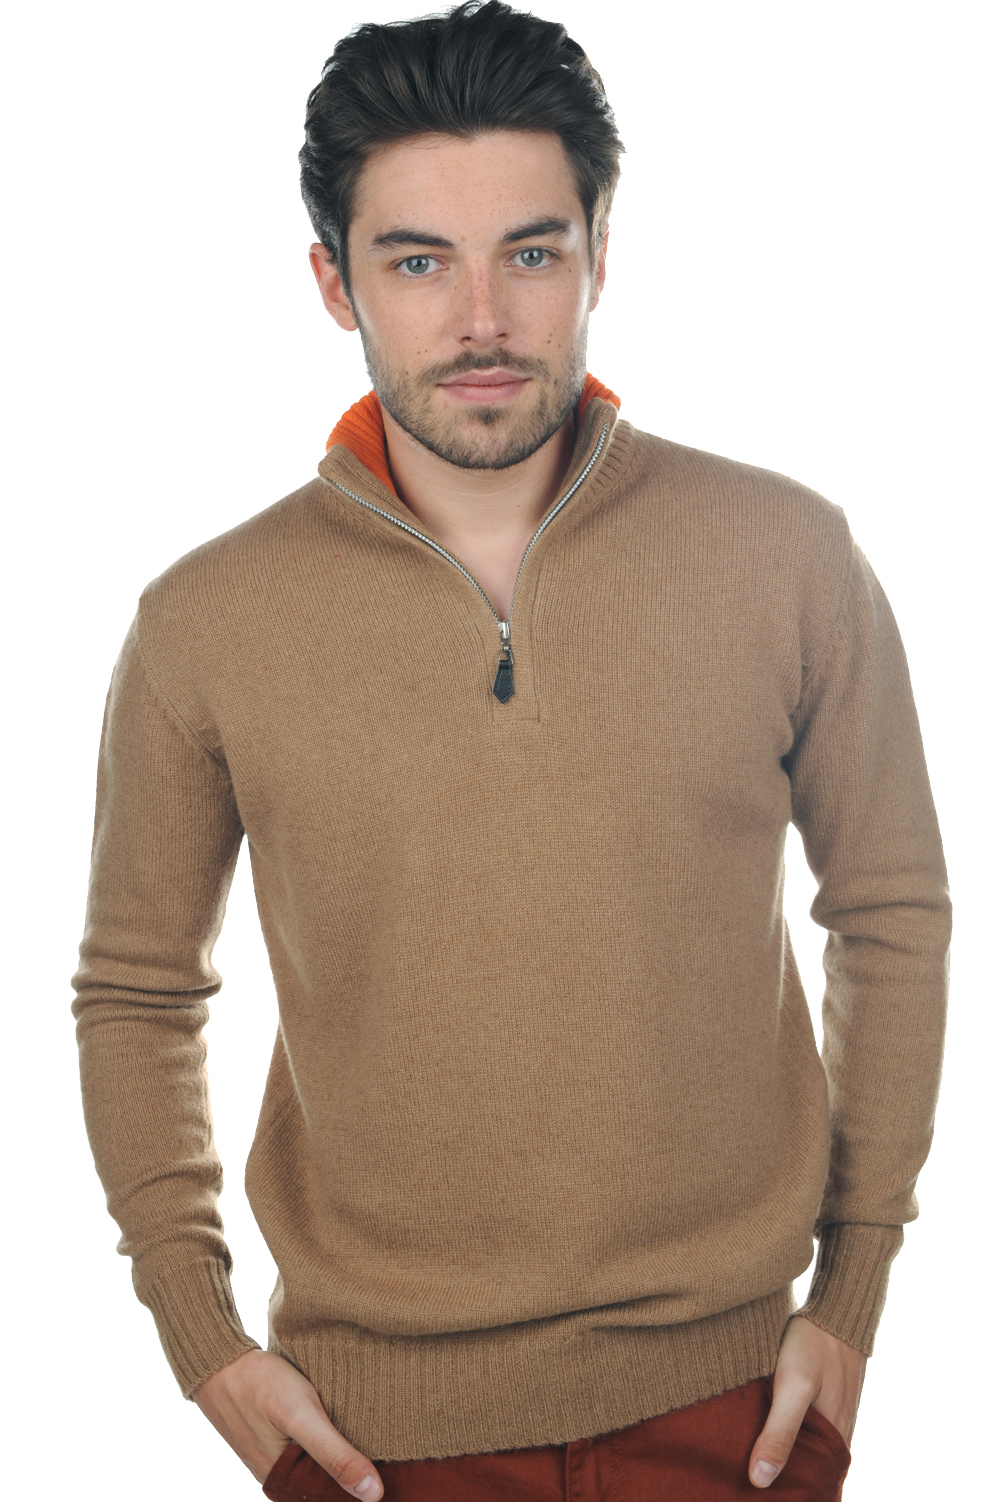 Camel alpaca camel camel for men kalmar natural camel xs